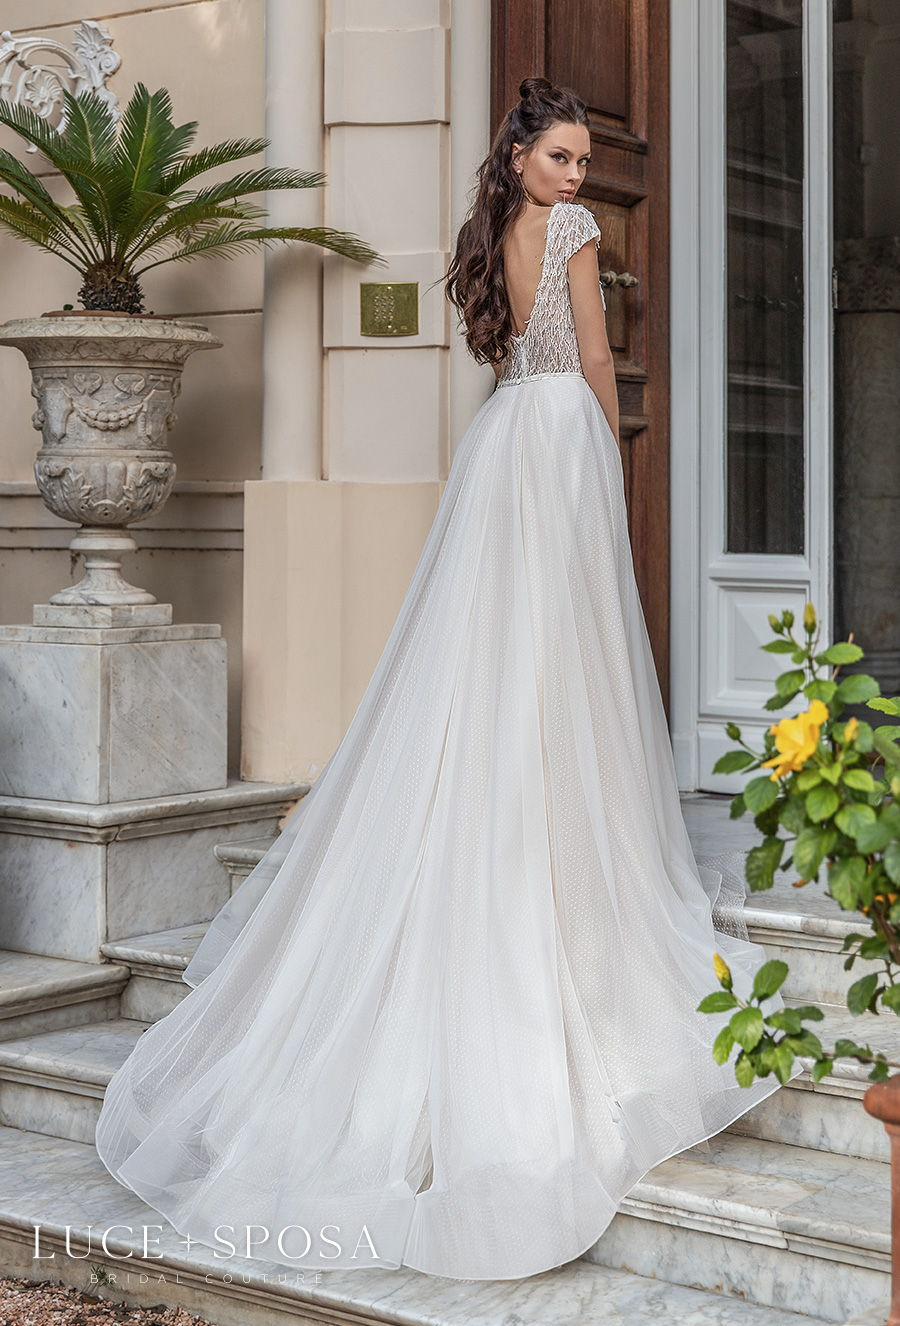 luce sposa 2021 sorrento bridal cap sleeves deep plunging v neck heavily embellished bodice tulle skirt romantic a  line wedding dress v back chapel train (daria) bv